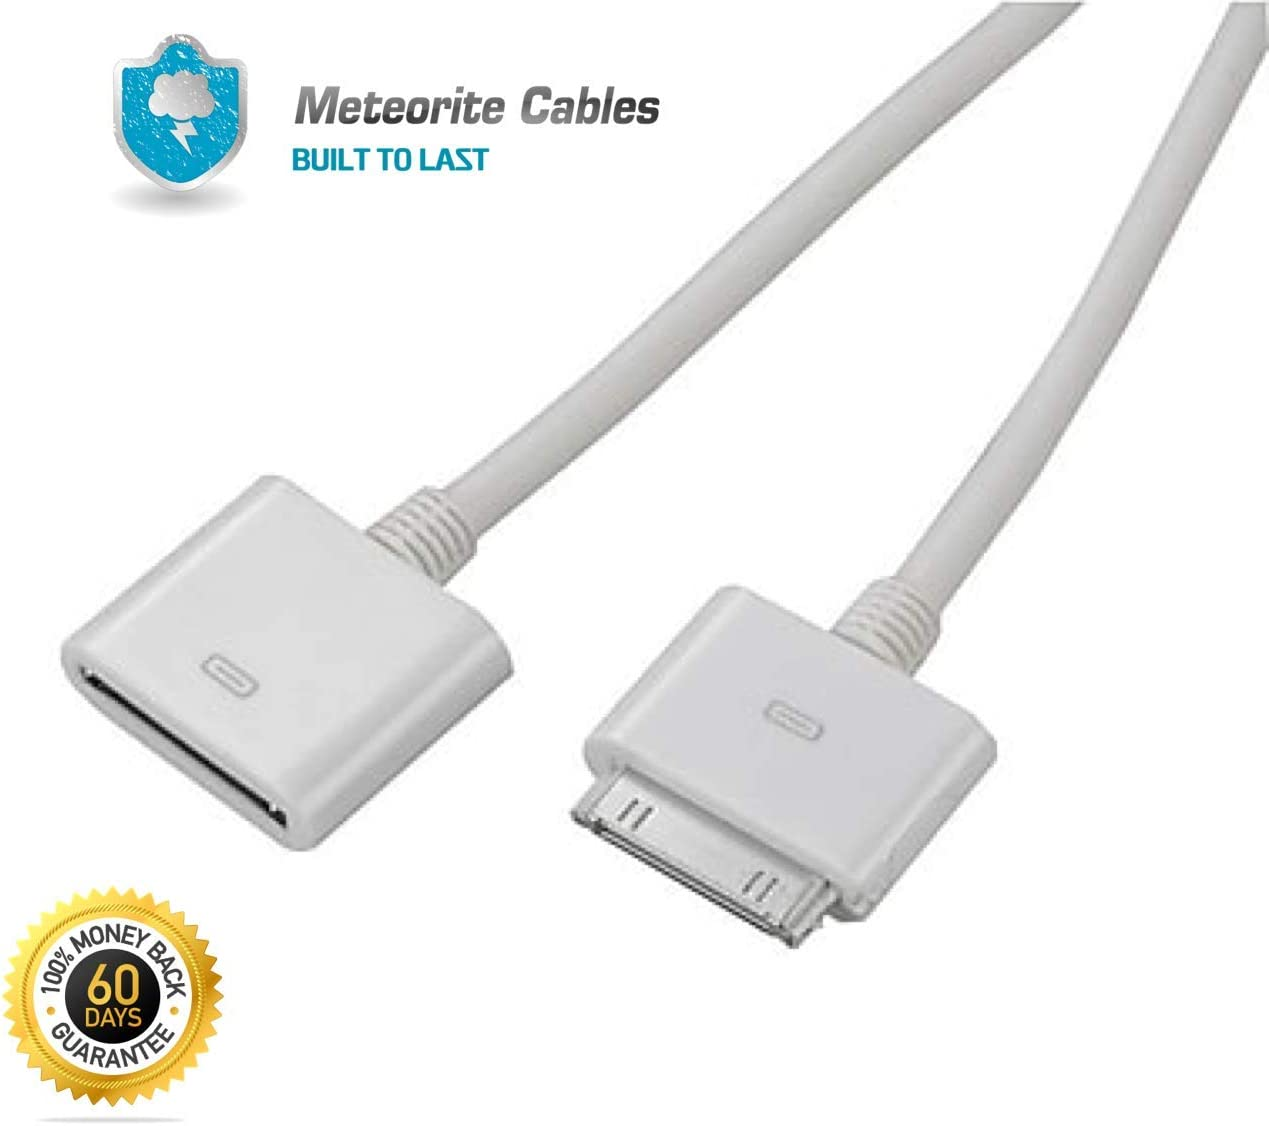 Dock Extender Extension Cable for iPhone 4S 4 3GS iPad iPod 30pin Male to Female